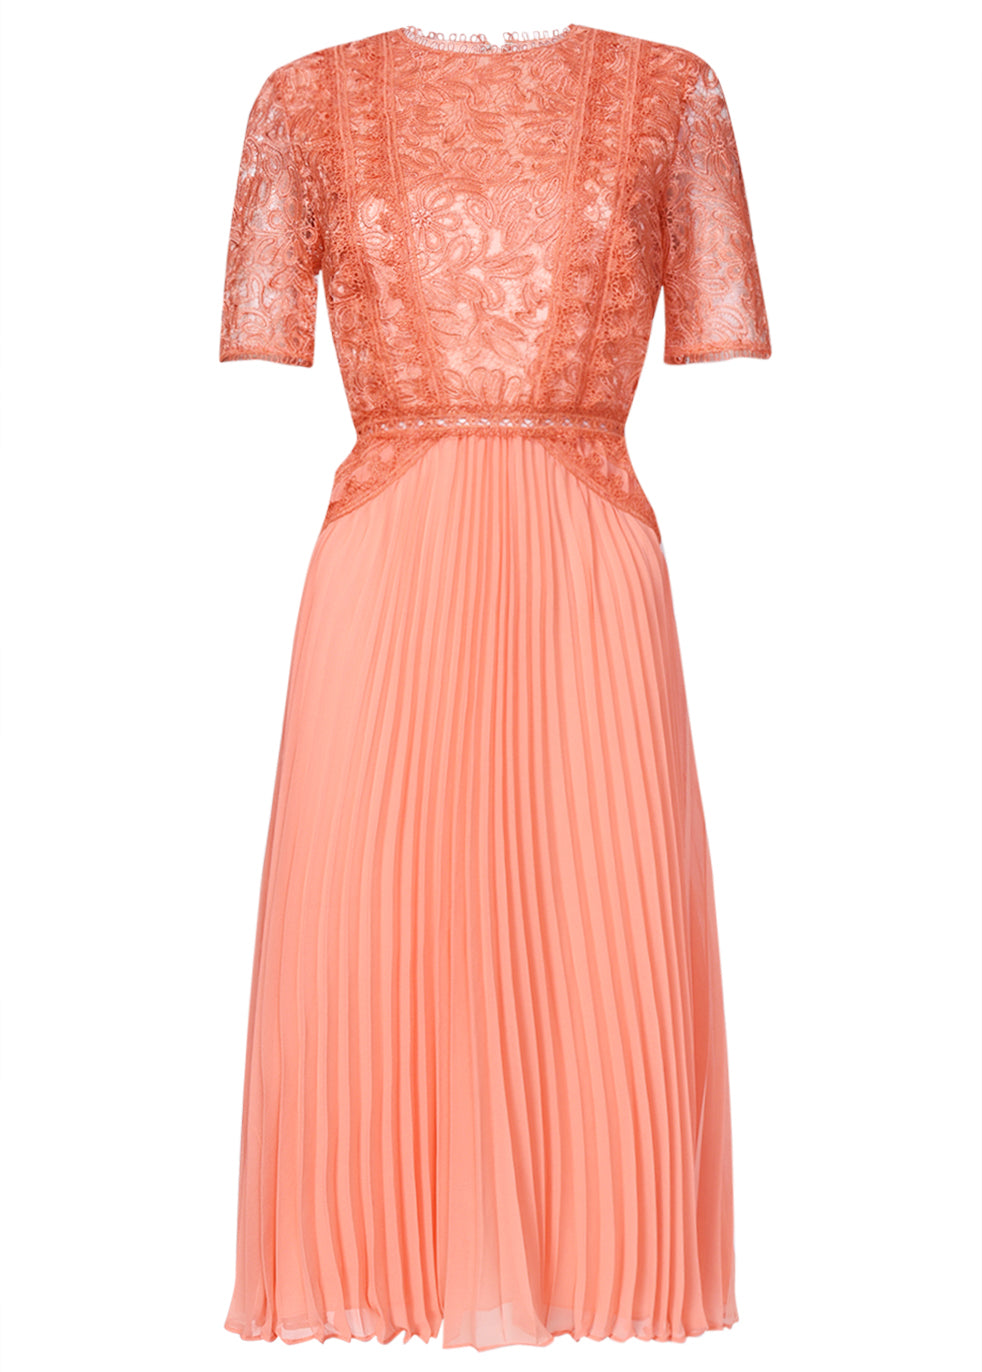 True Decadence Peach Lace Midi Dress Pleated Skater Skirt